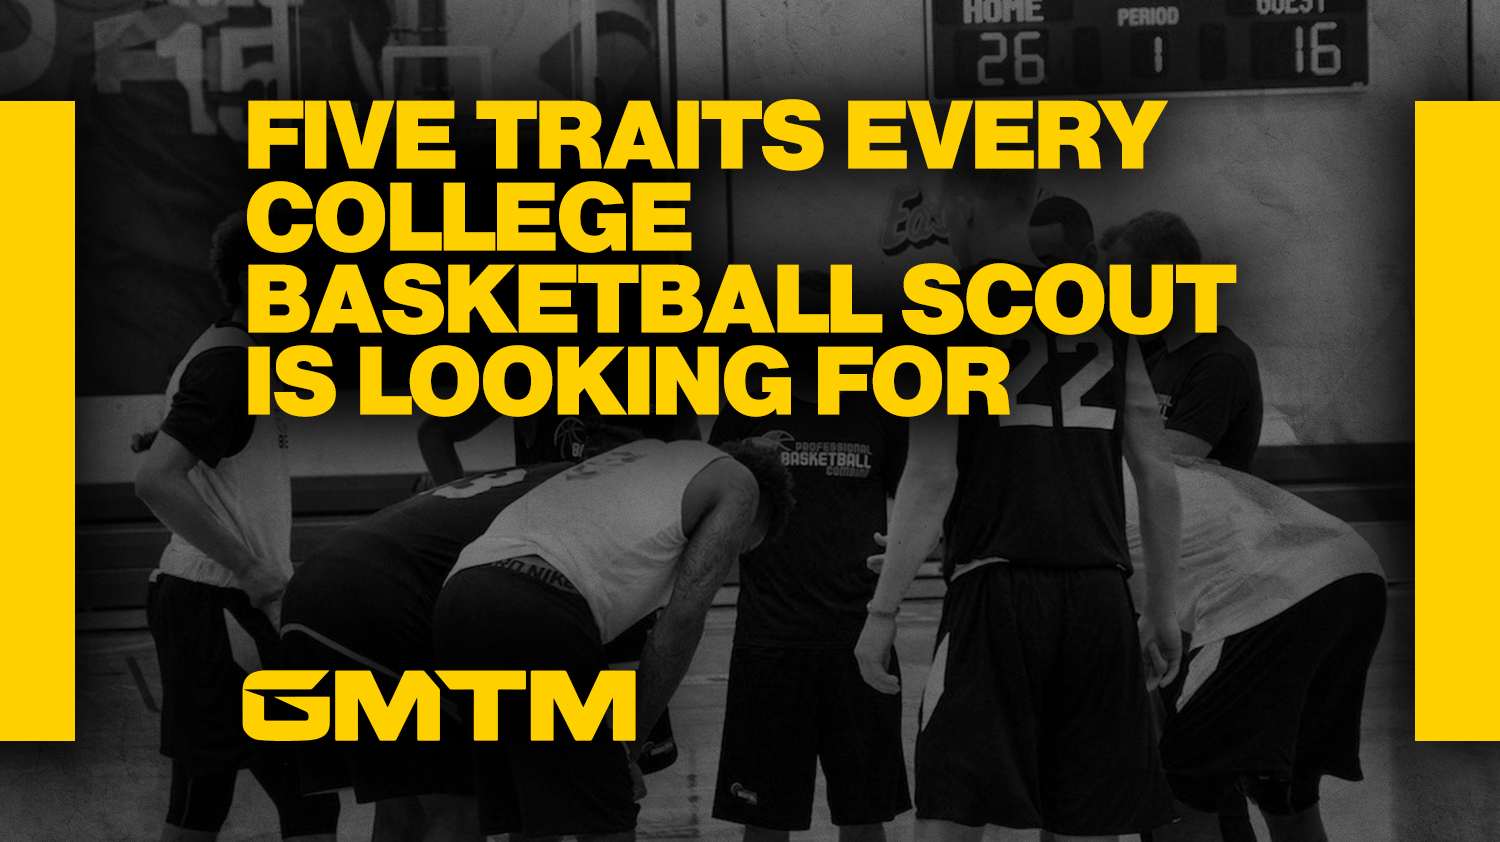 Five Traits Every College Basketball Scout Is Looking For